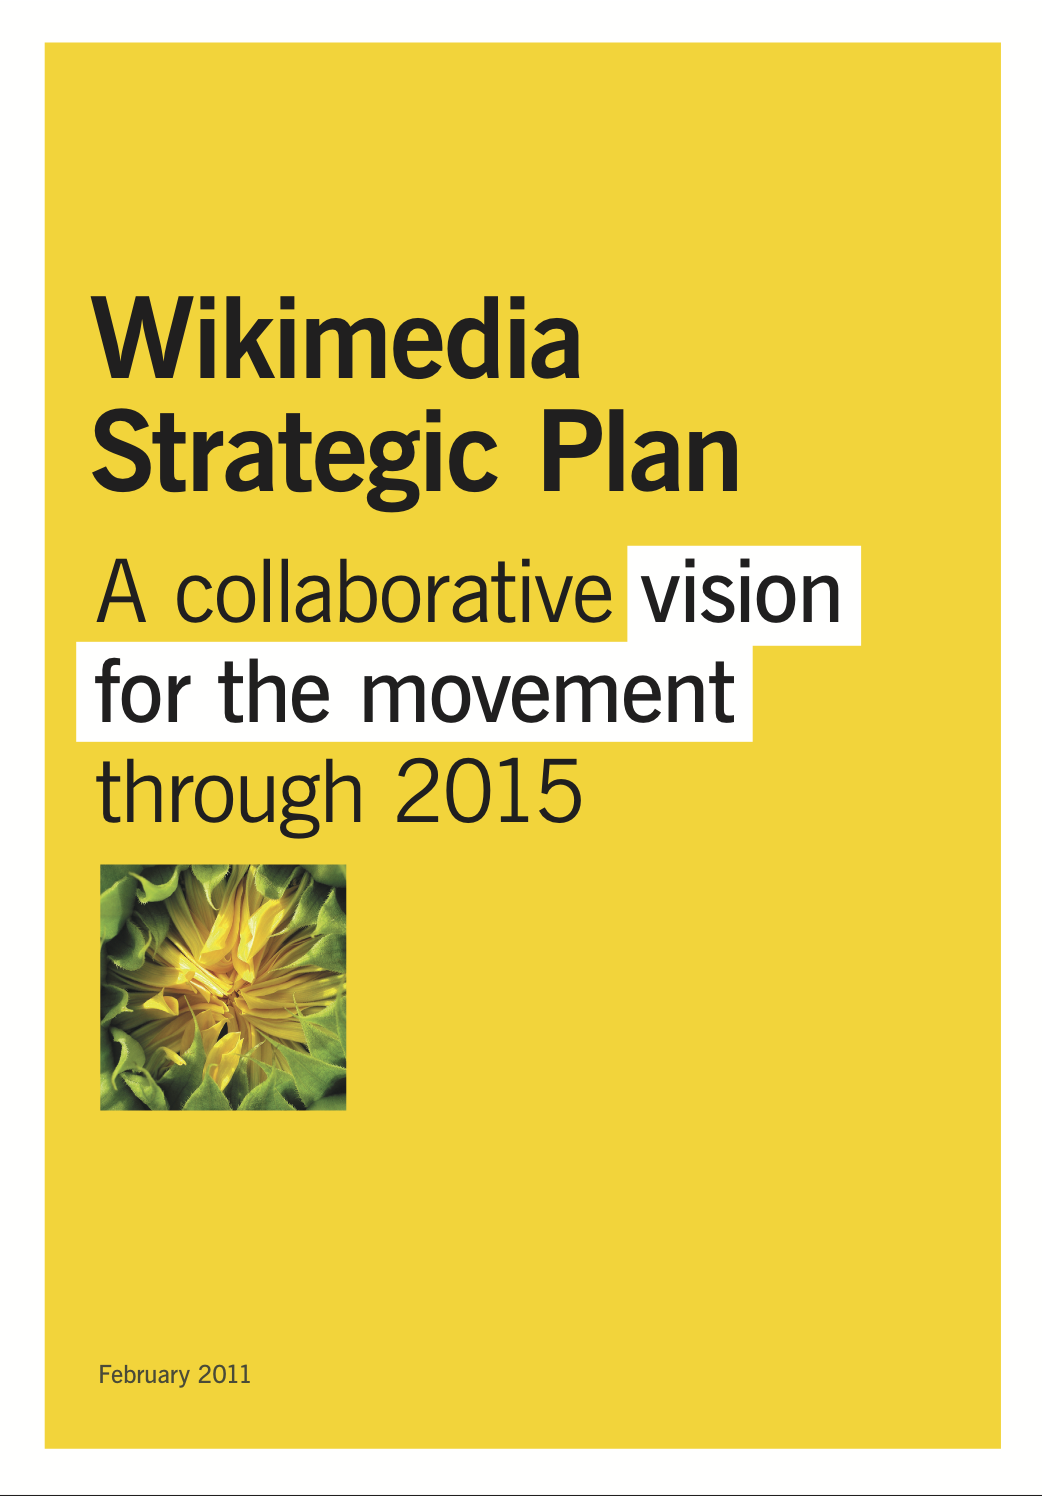 Wikimedia strategic plan